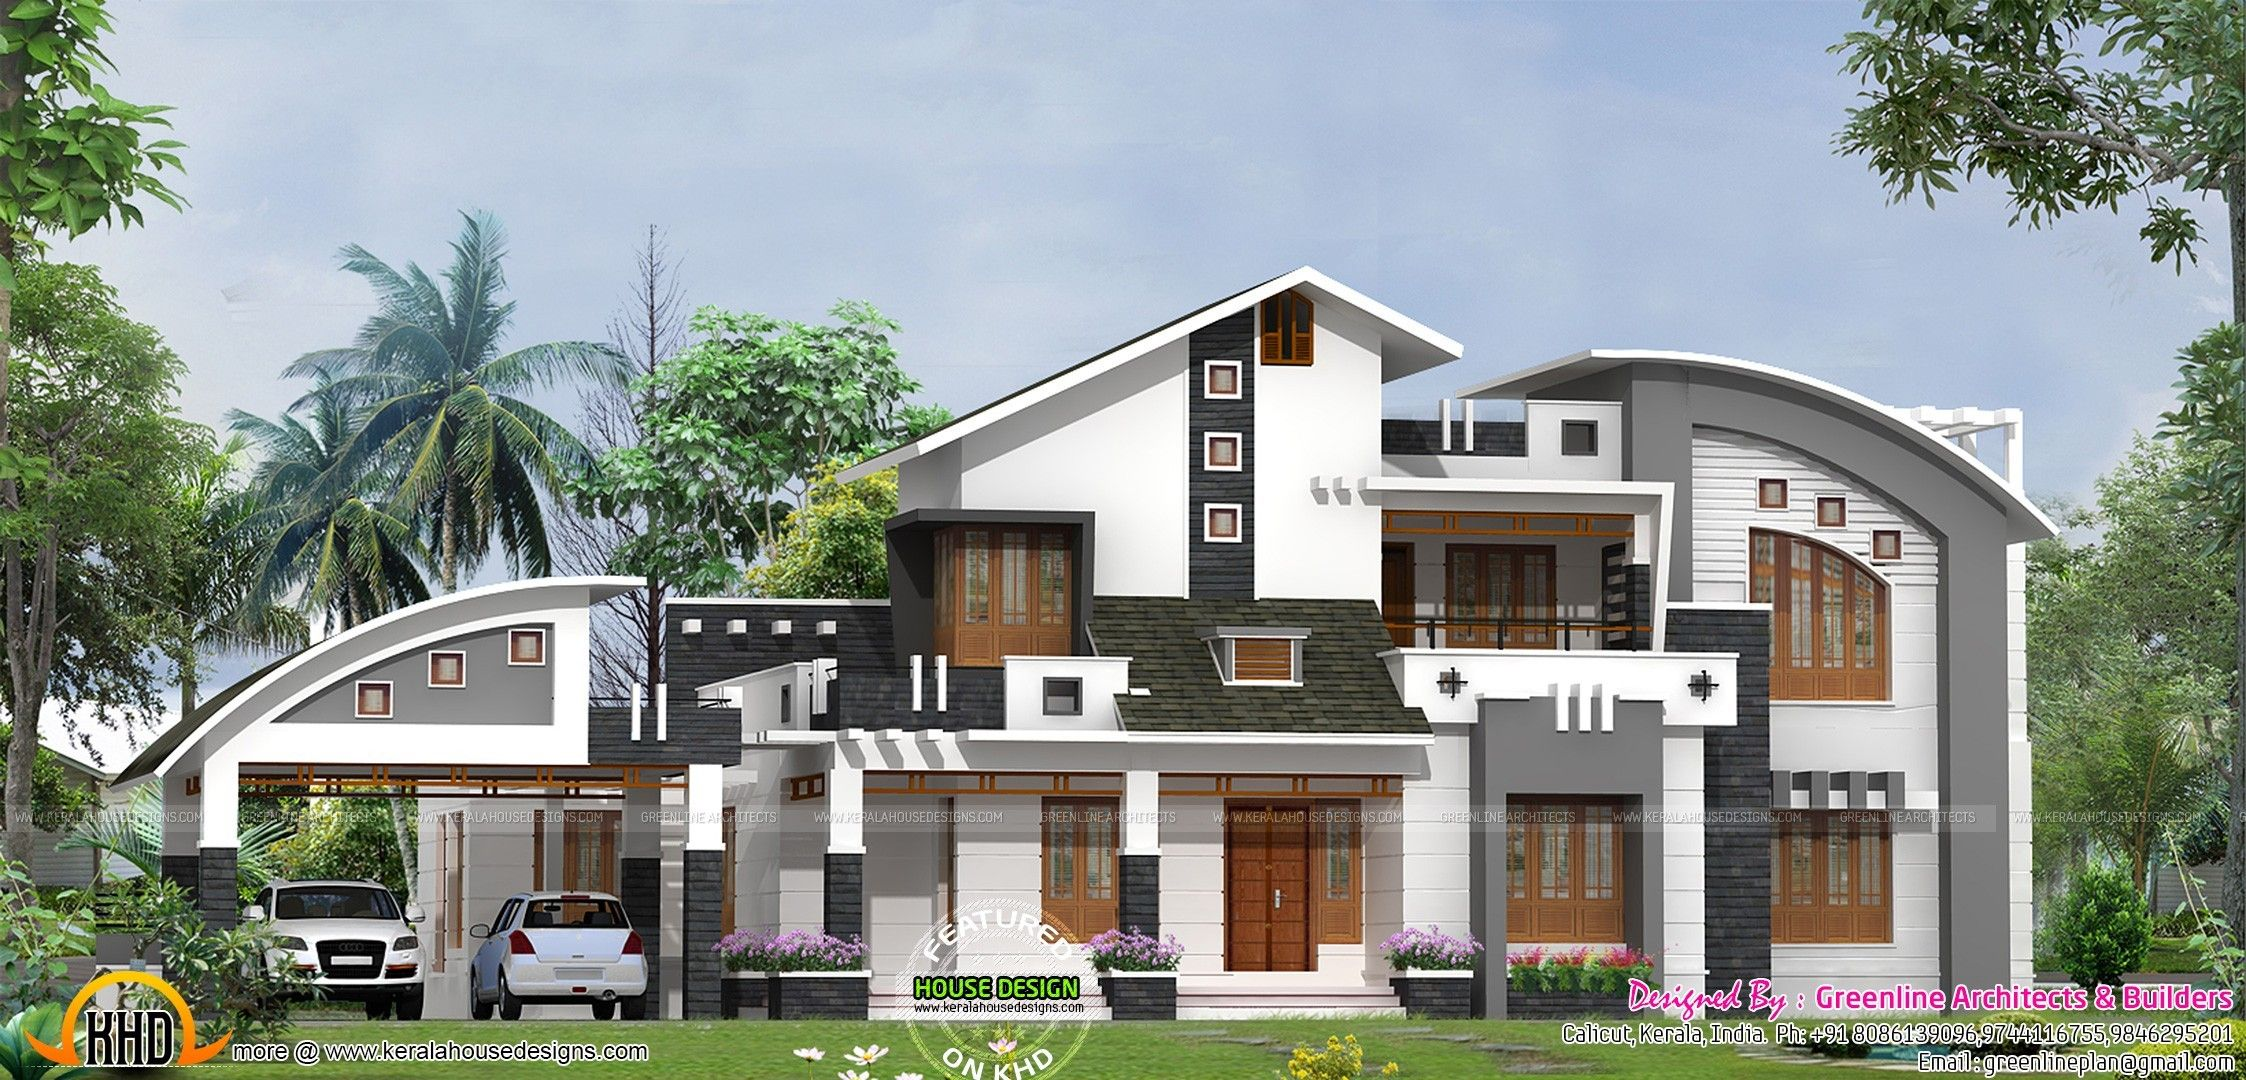 Kerala Style Homes Plans Free Elegant Kerala Home Plans ...